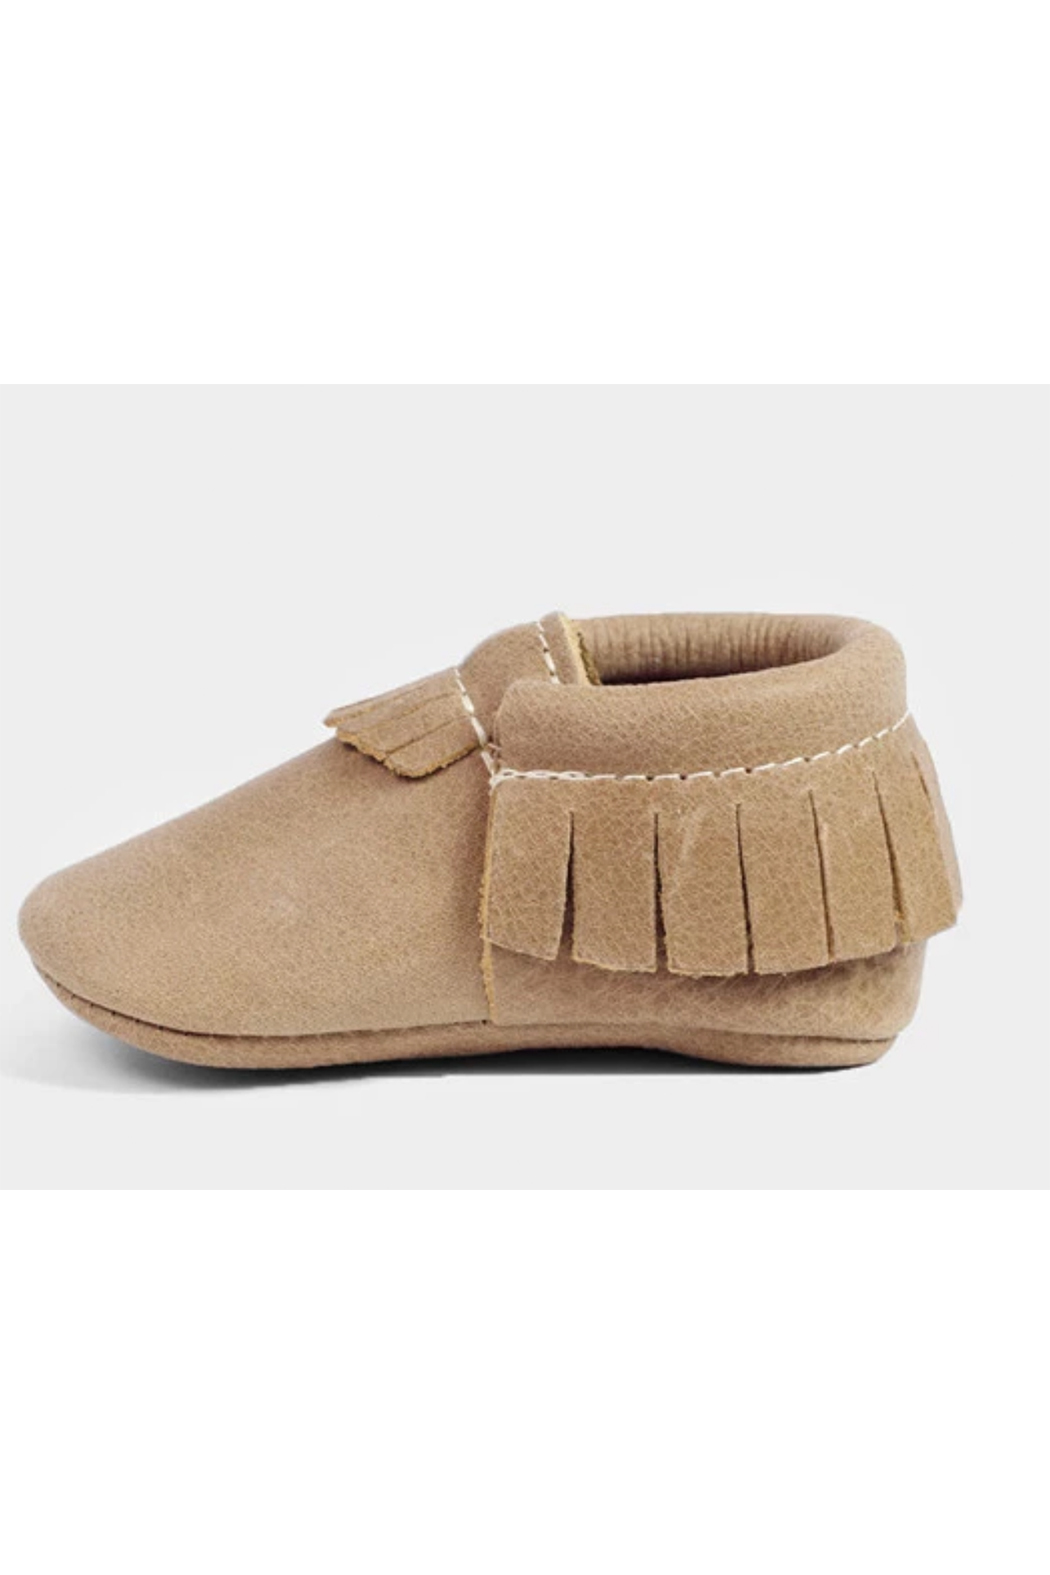 Freshly Picked Weathered Brown Moccasins - Main Image